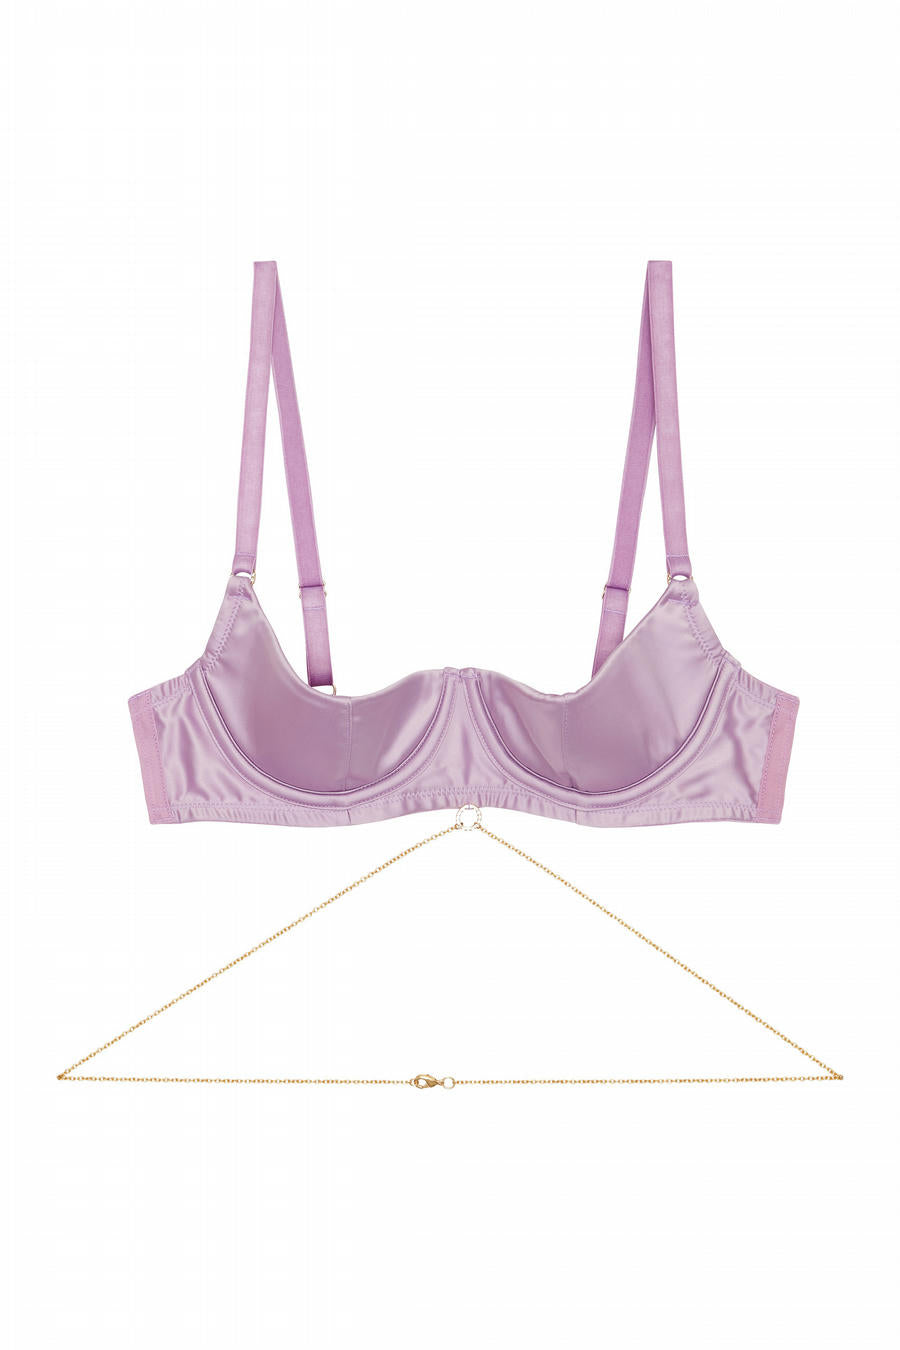 Knox Quarter Cup Bra with Chain - 32B-44K